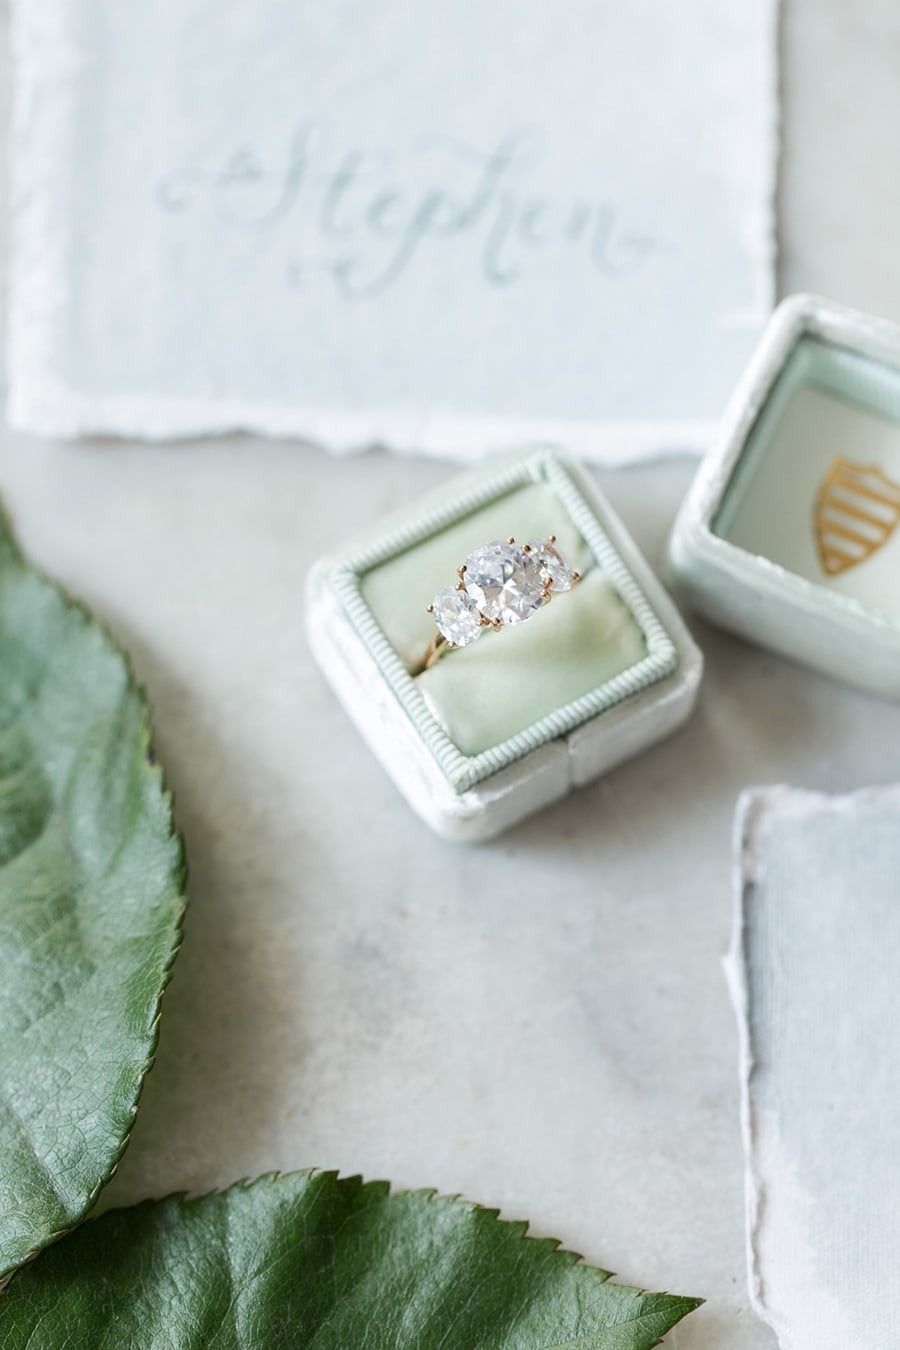 Yellow gold oval diamond trilogy engagement ring displayed in green velvet ring box | Photography: Camille Catherine Photography via Elizabeth Anne Designs